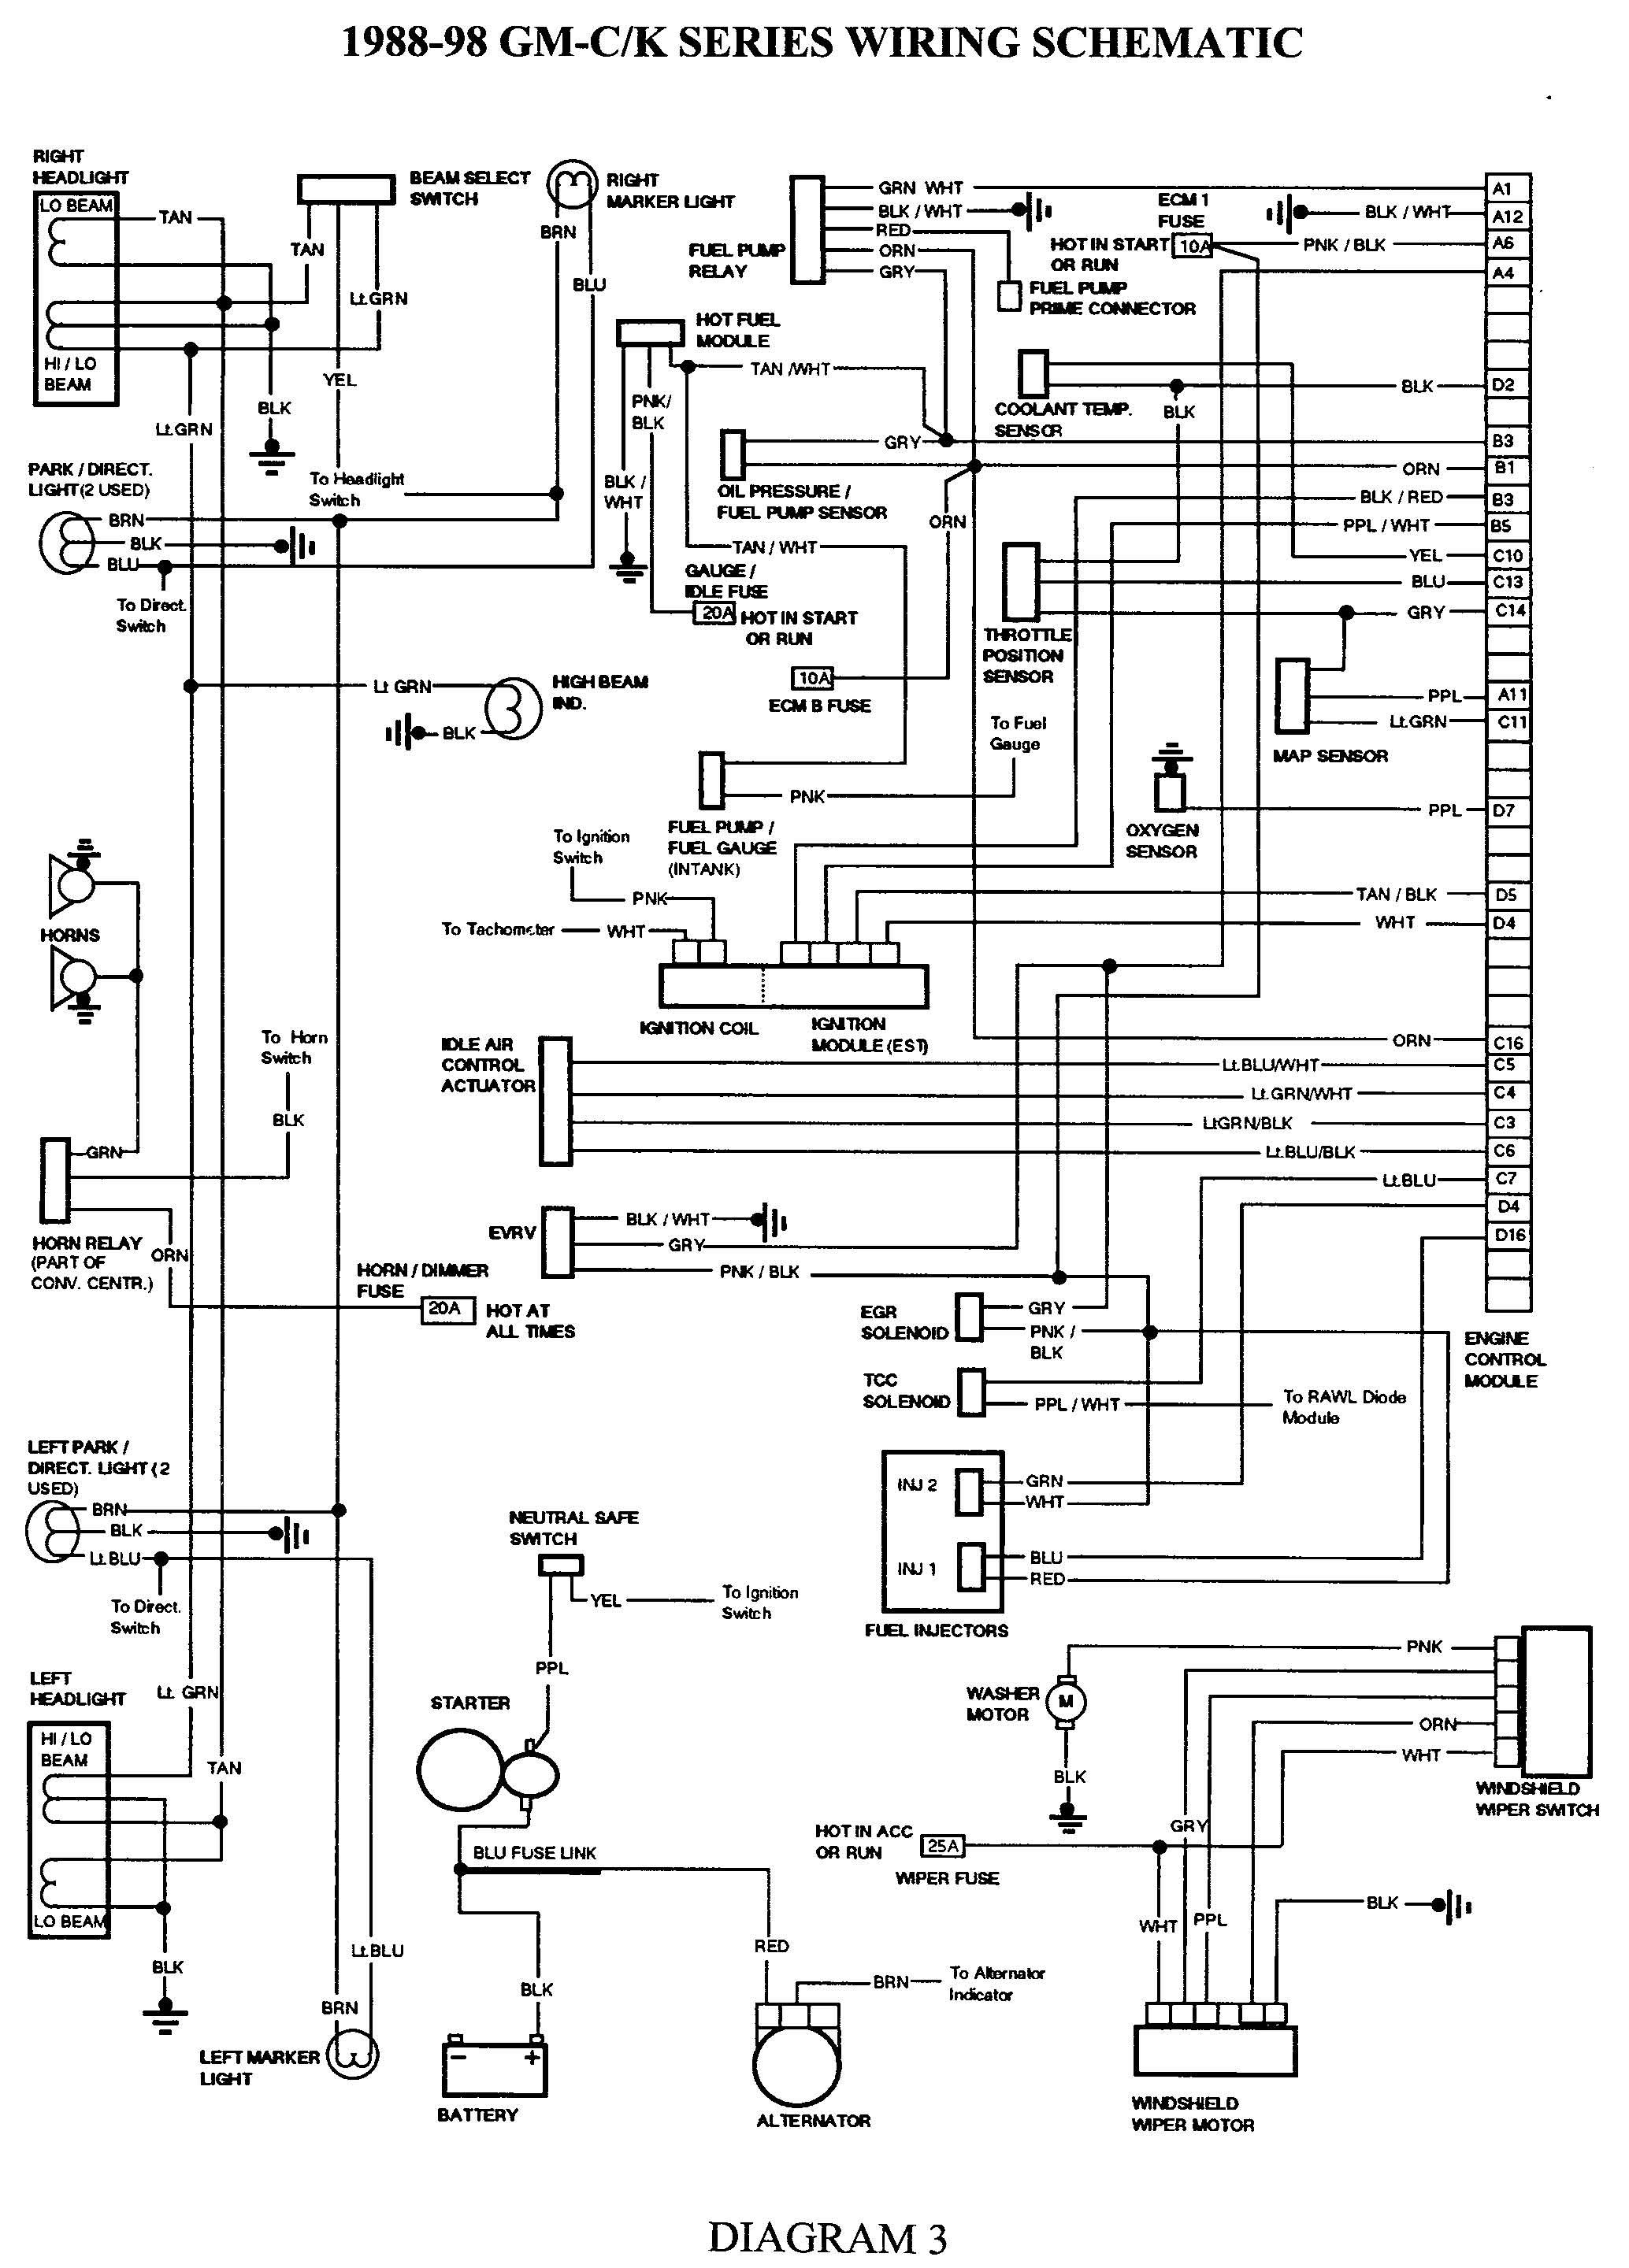 1990 topkick wiring diagram wiring diagram explained rh 11 10 corruptionincoal org 3116 cat engine 3116 cat engine with a c [ 2068 x 2880 Pixel ]